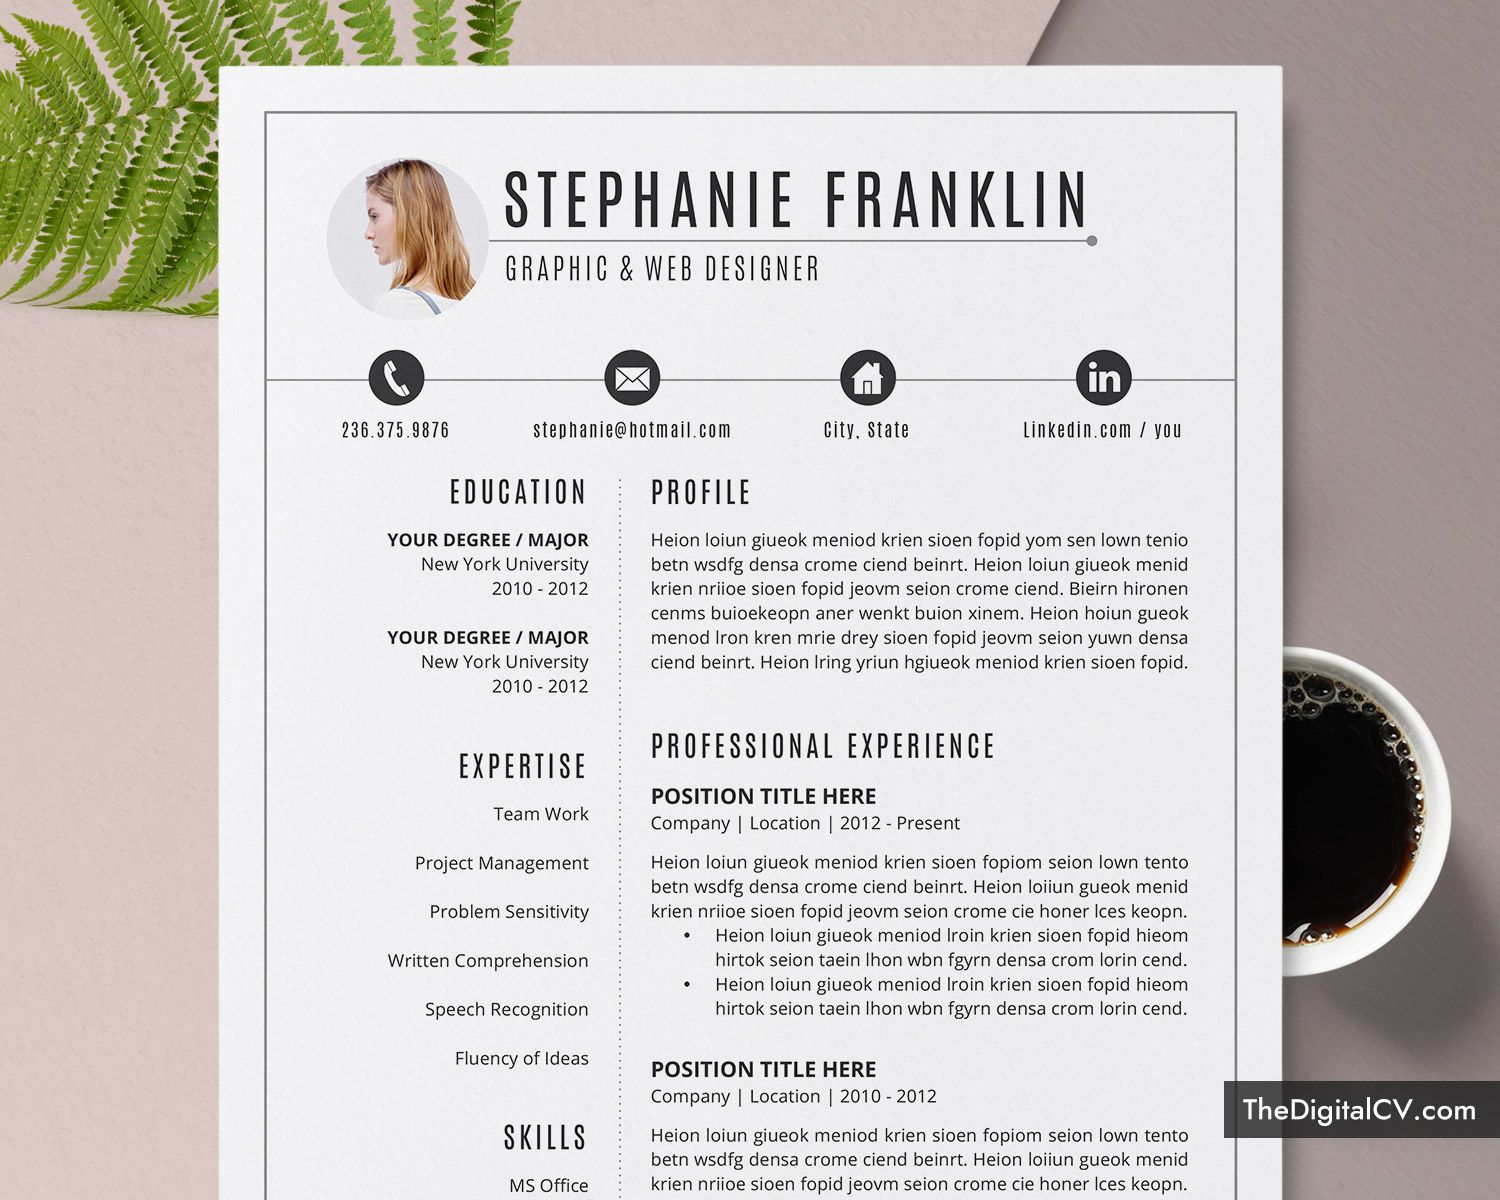 Resume Templates 2020 Free in 2020 Student resume, Resume